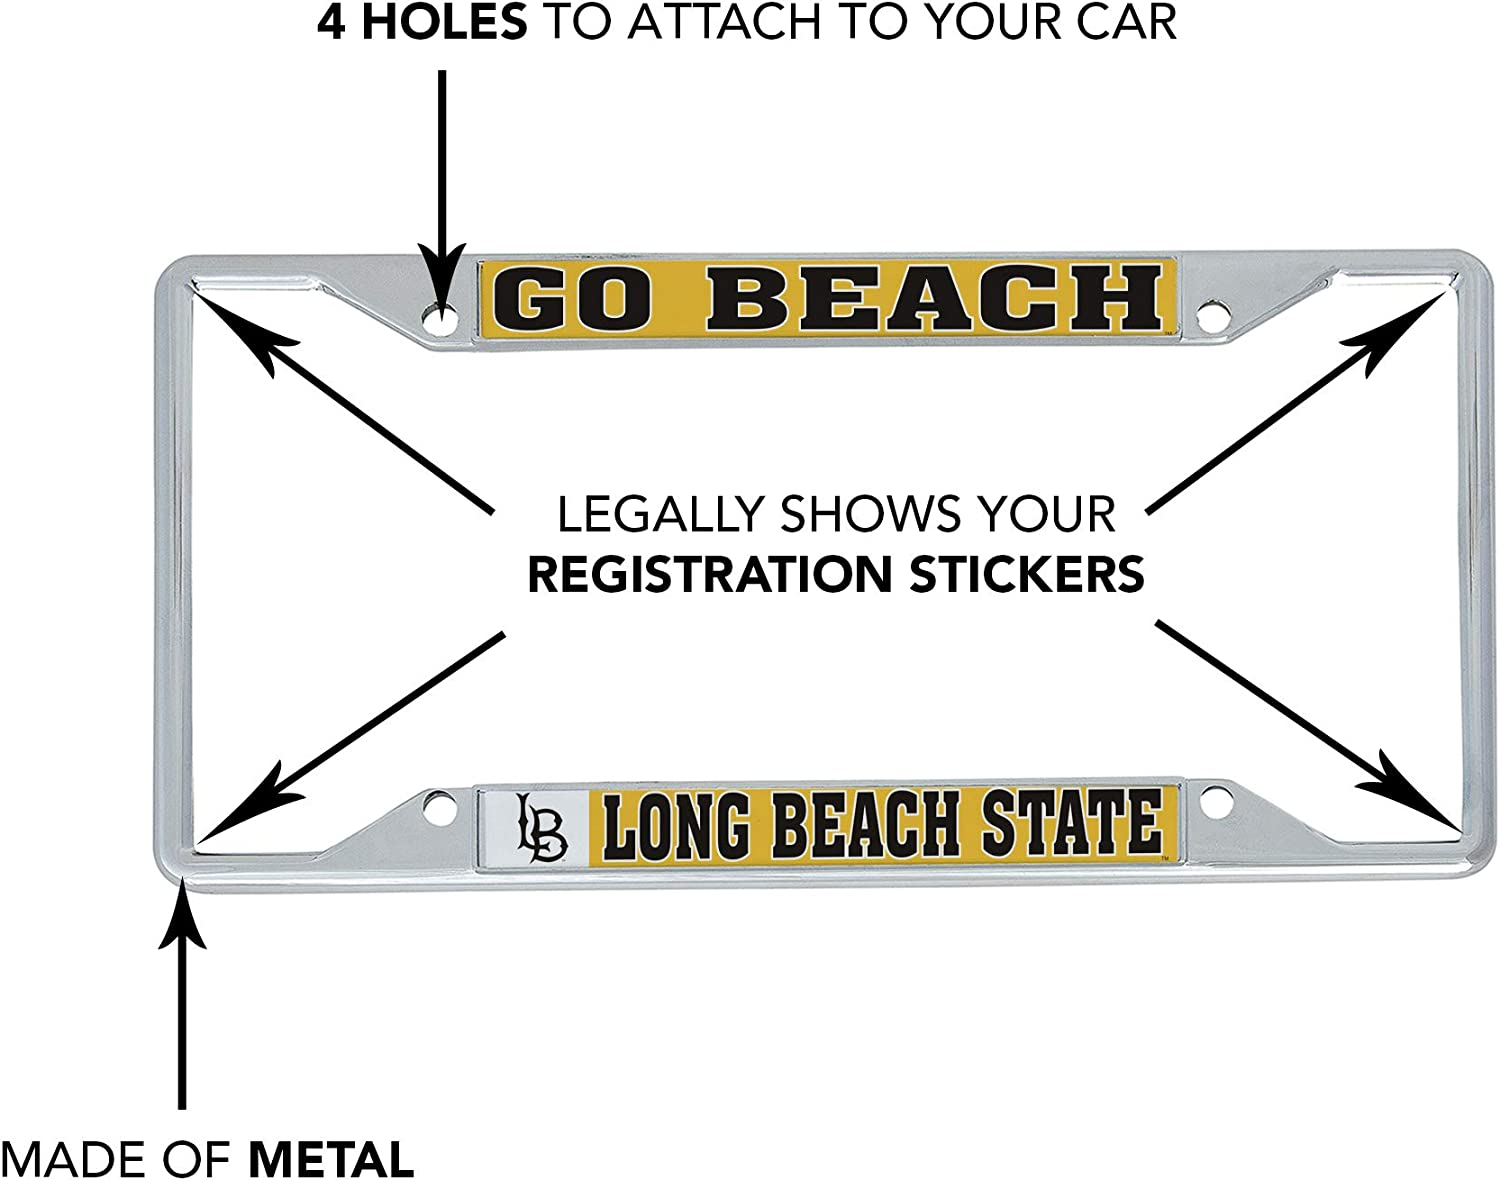 Desert Cactus California Cal State University Long Beach CSULB 49ers Dirtbags NCAA Metal License Plate Frame for Front Back of Car Officially Licensed Mascot